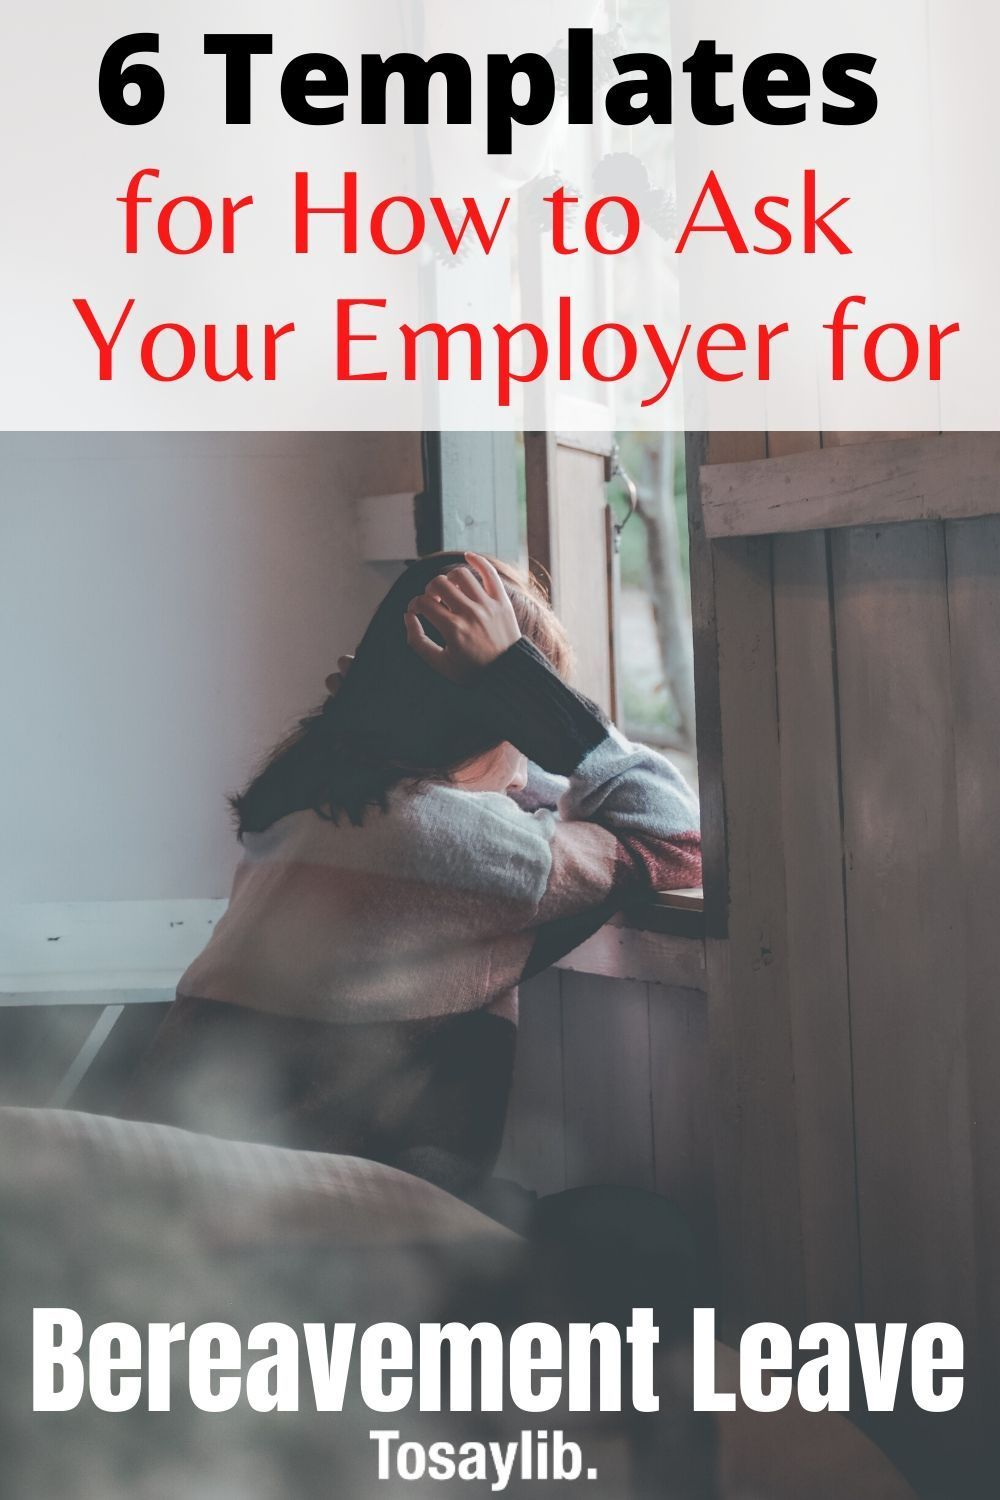 6 Templates For How To Ask Your Employer For Bereavement Leave Tosaylib Bereavement Email Writing Got To Be There